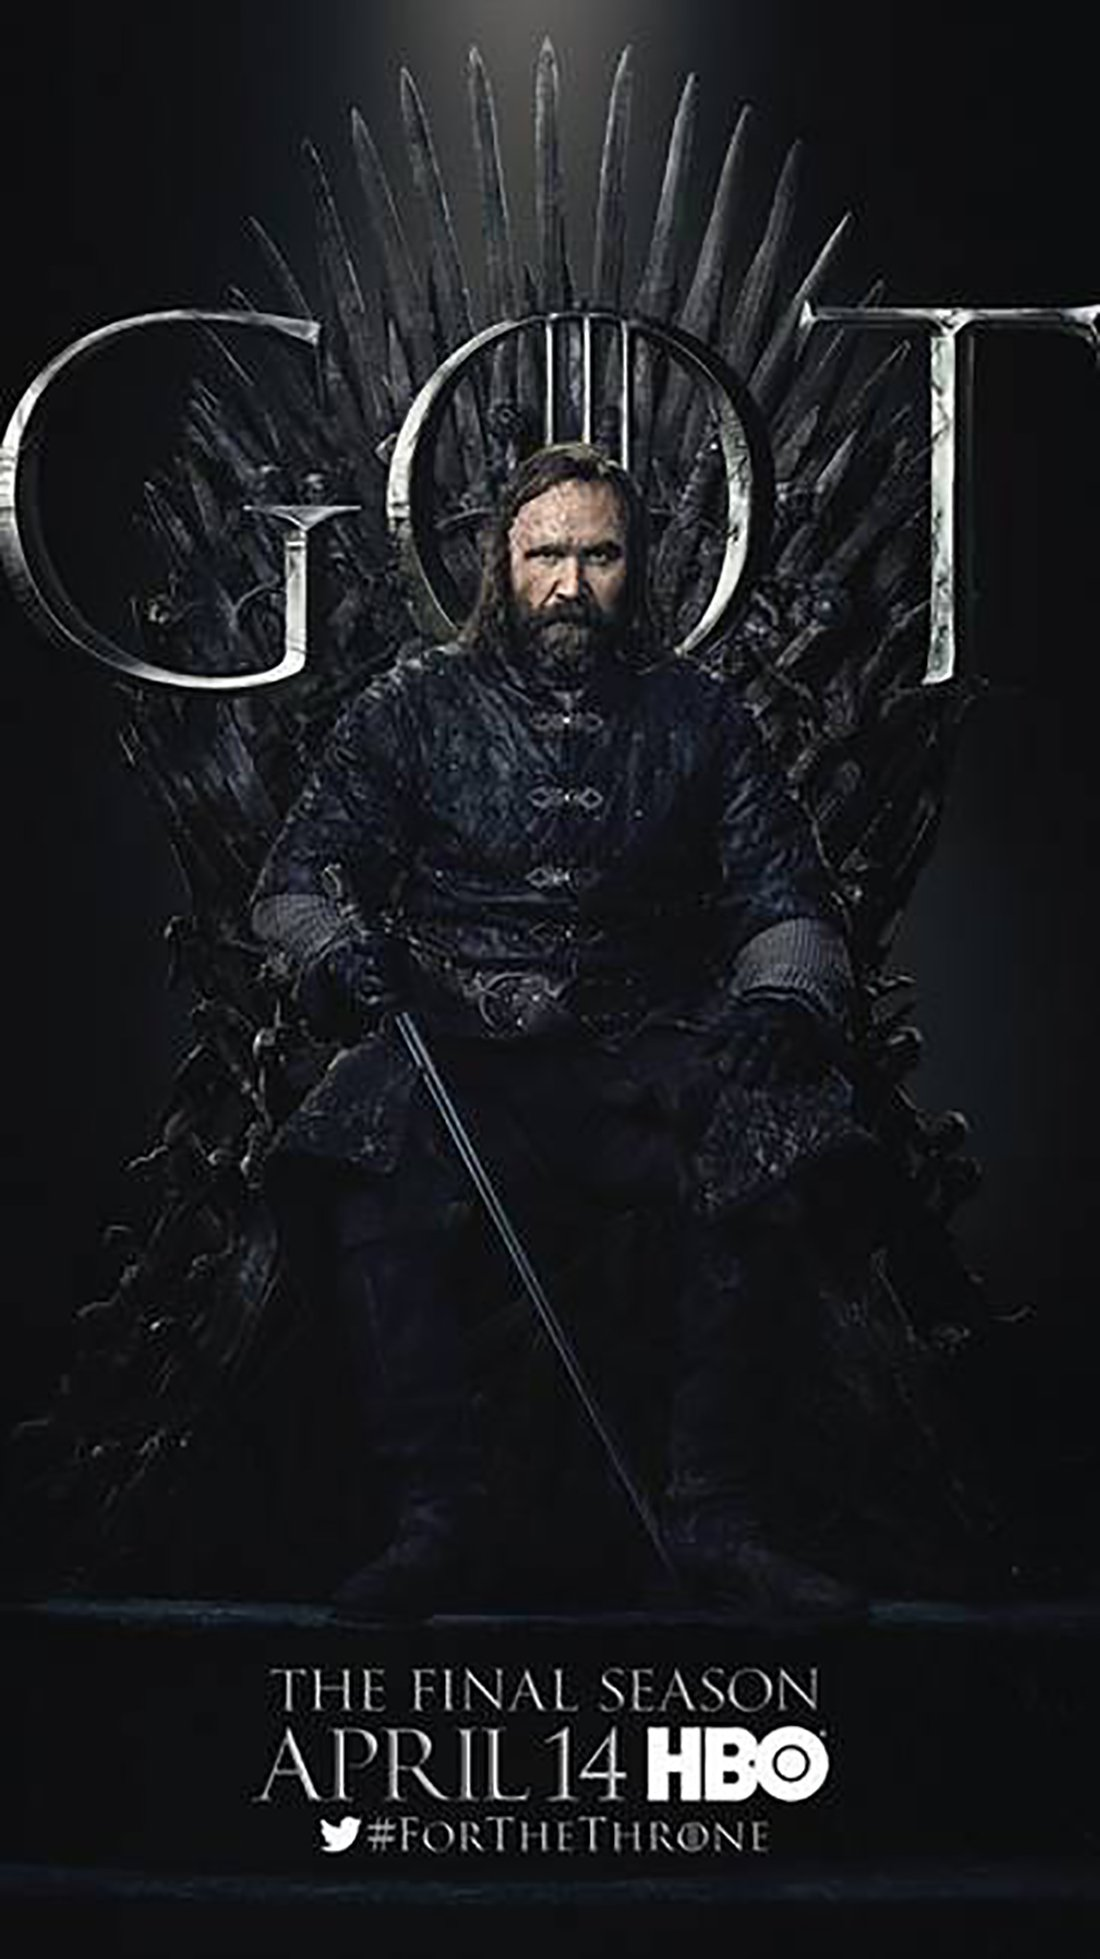 Game Of Thrones Season 8 Posters Give Everyone A Spin On The Iron